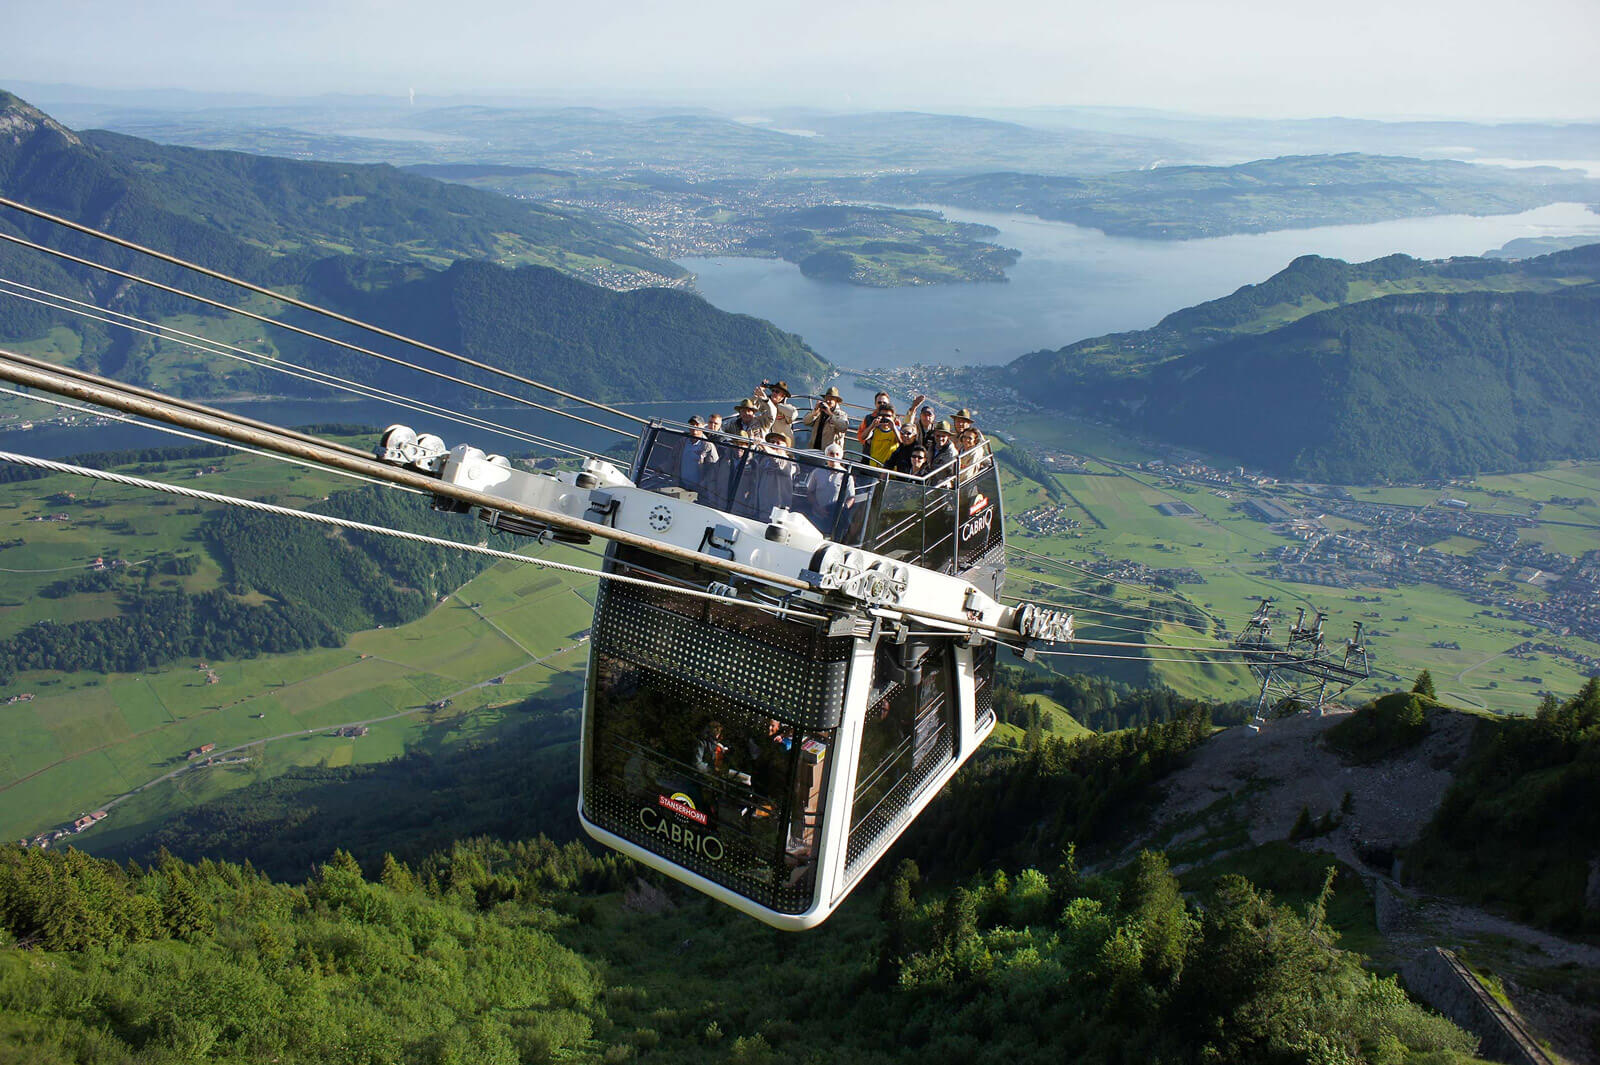 CabriO Cable Car at Stanserhorn, Switzerland